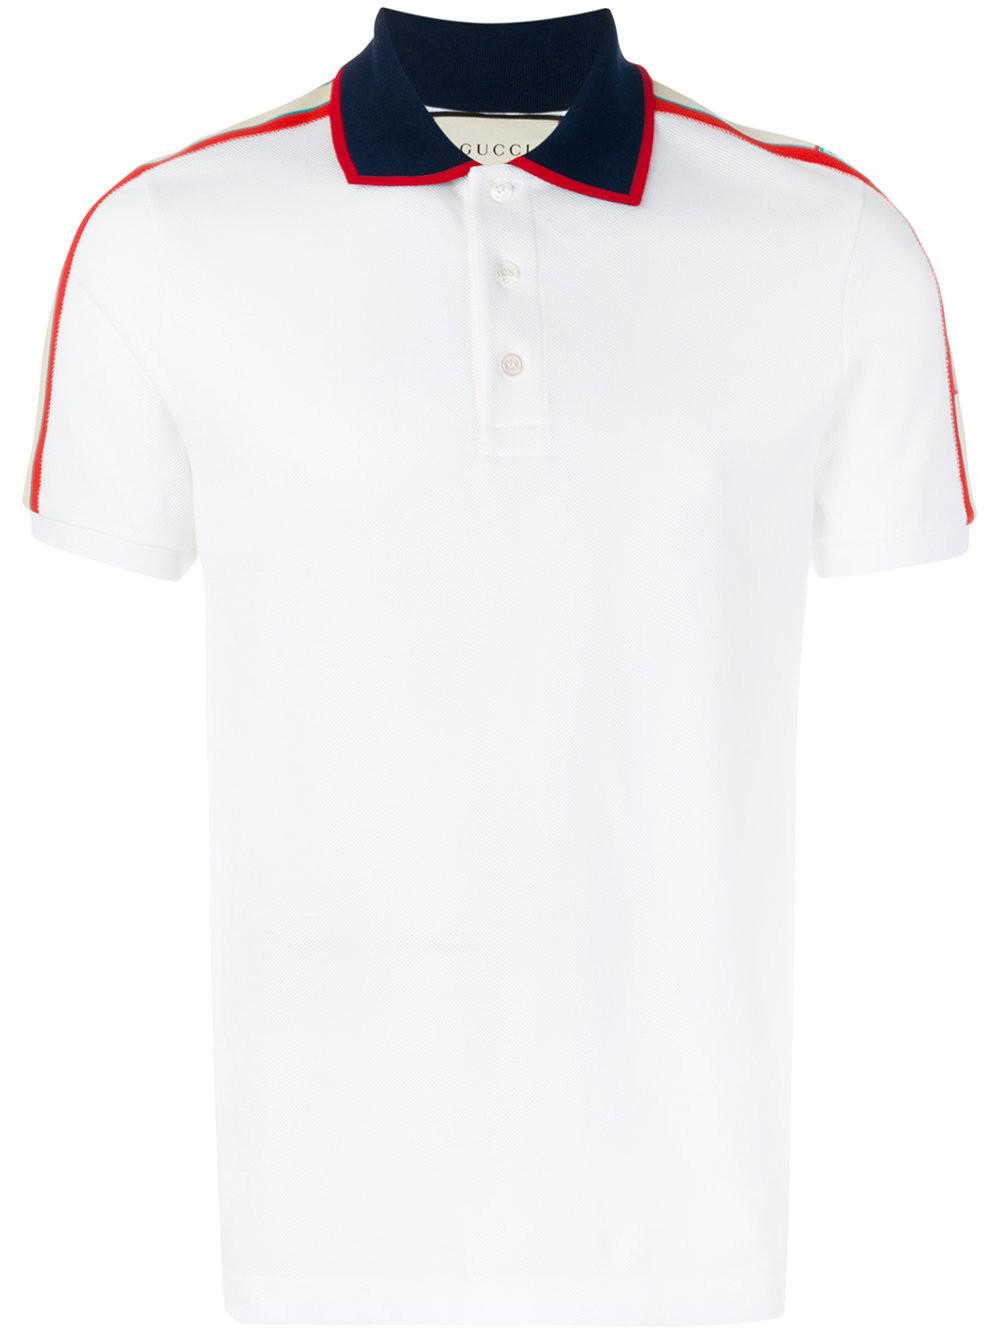 a70fa92b Gucci T-shirt Polo in White for Men - Lyst